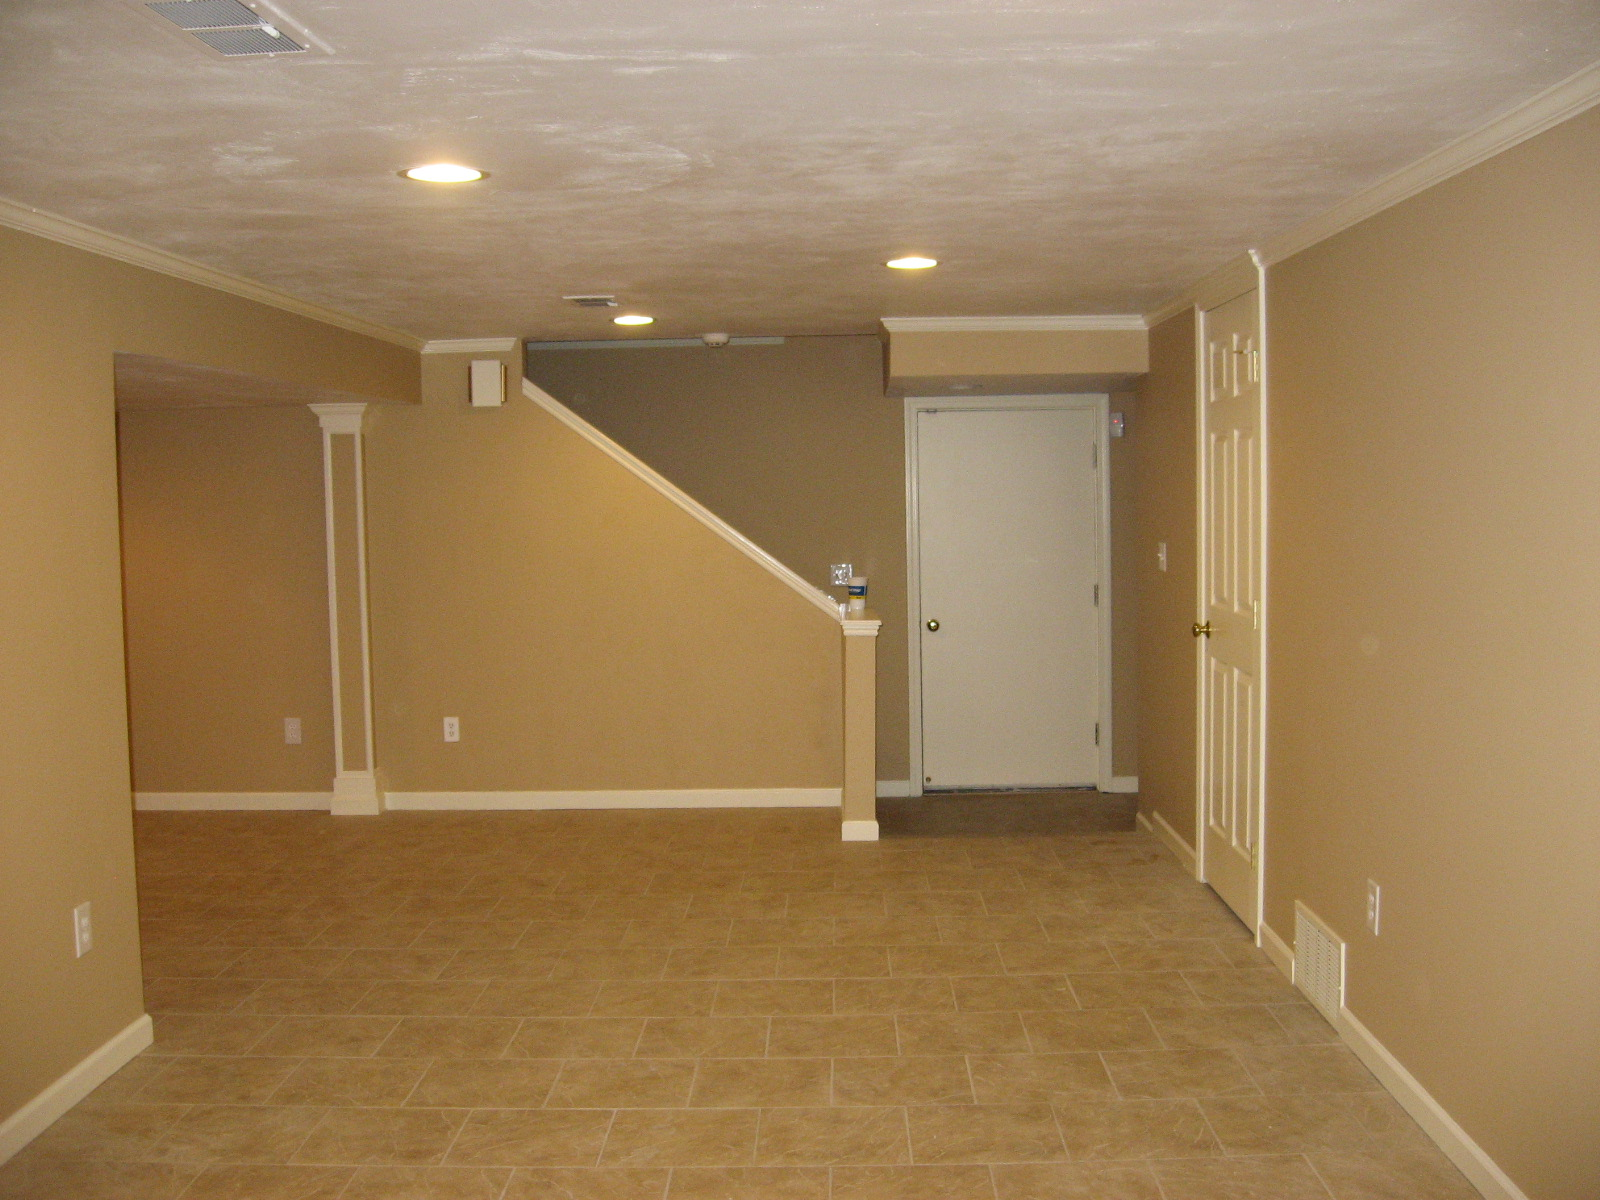 Basement insulation and remodeling ideas